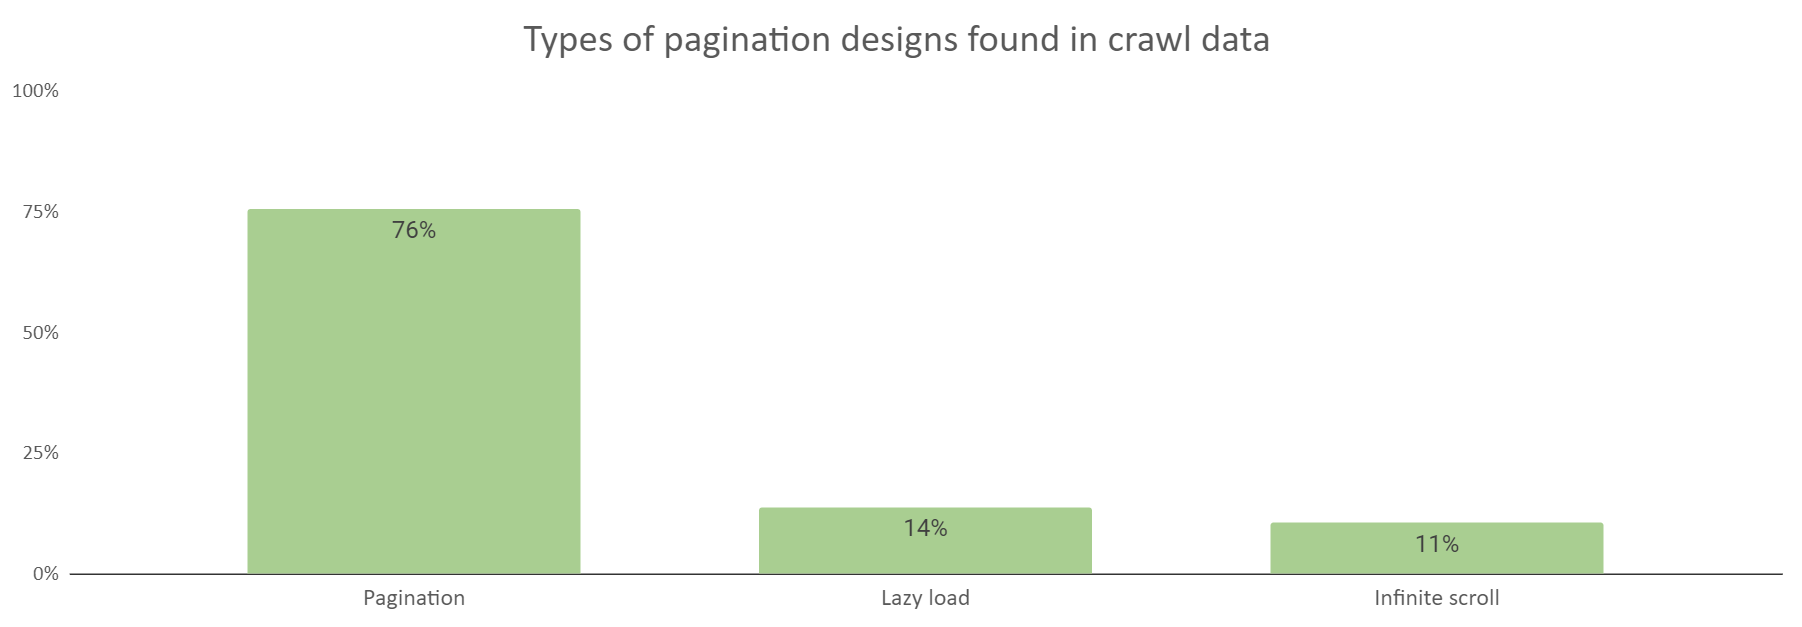 The types of web designs found in crawl data